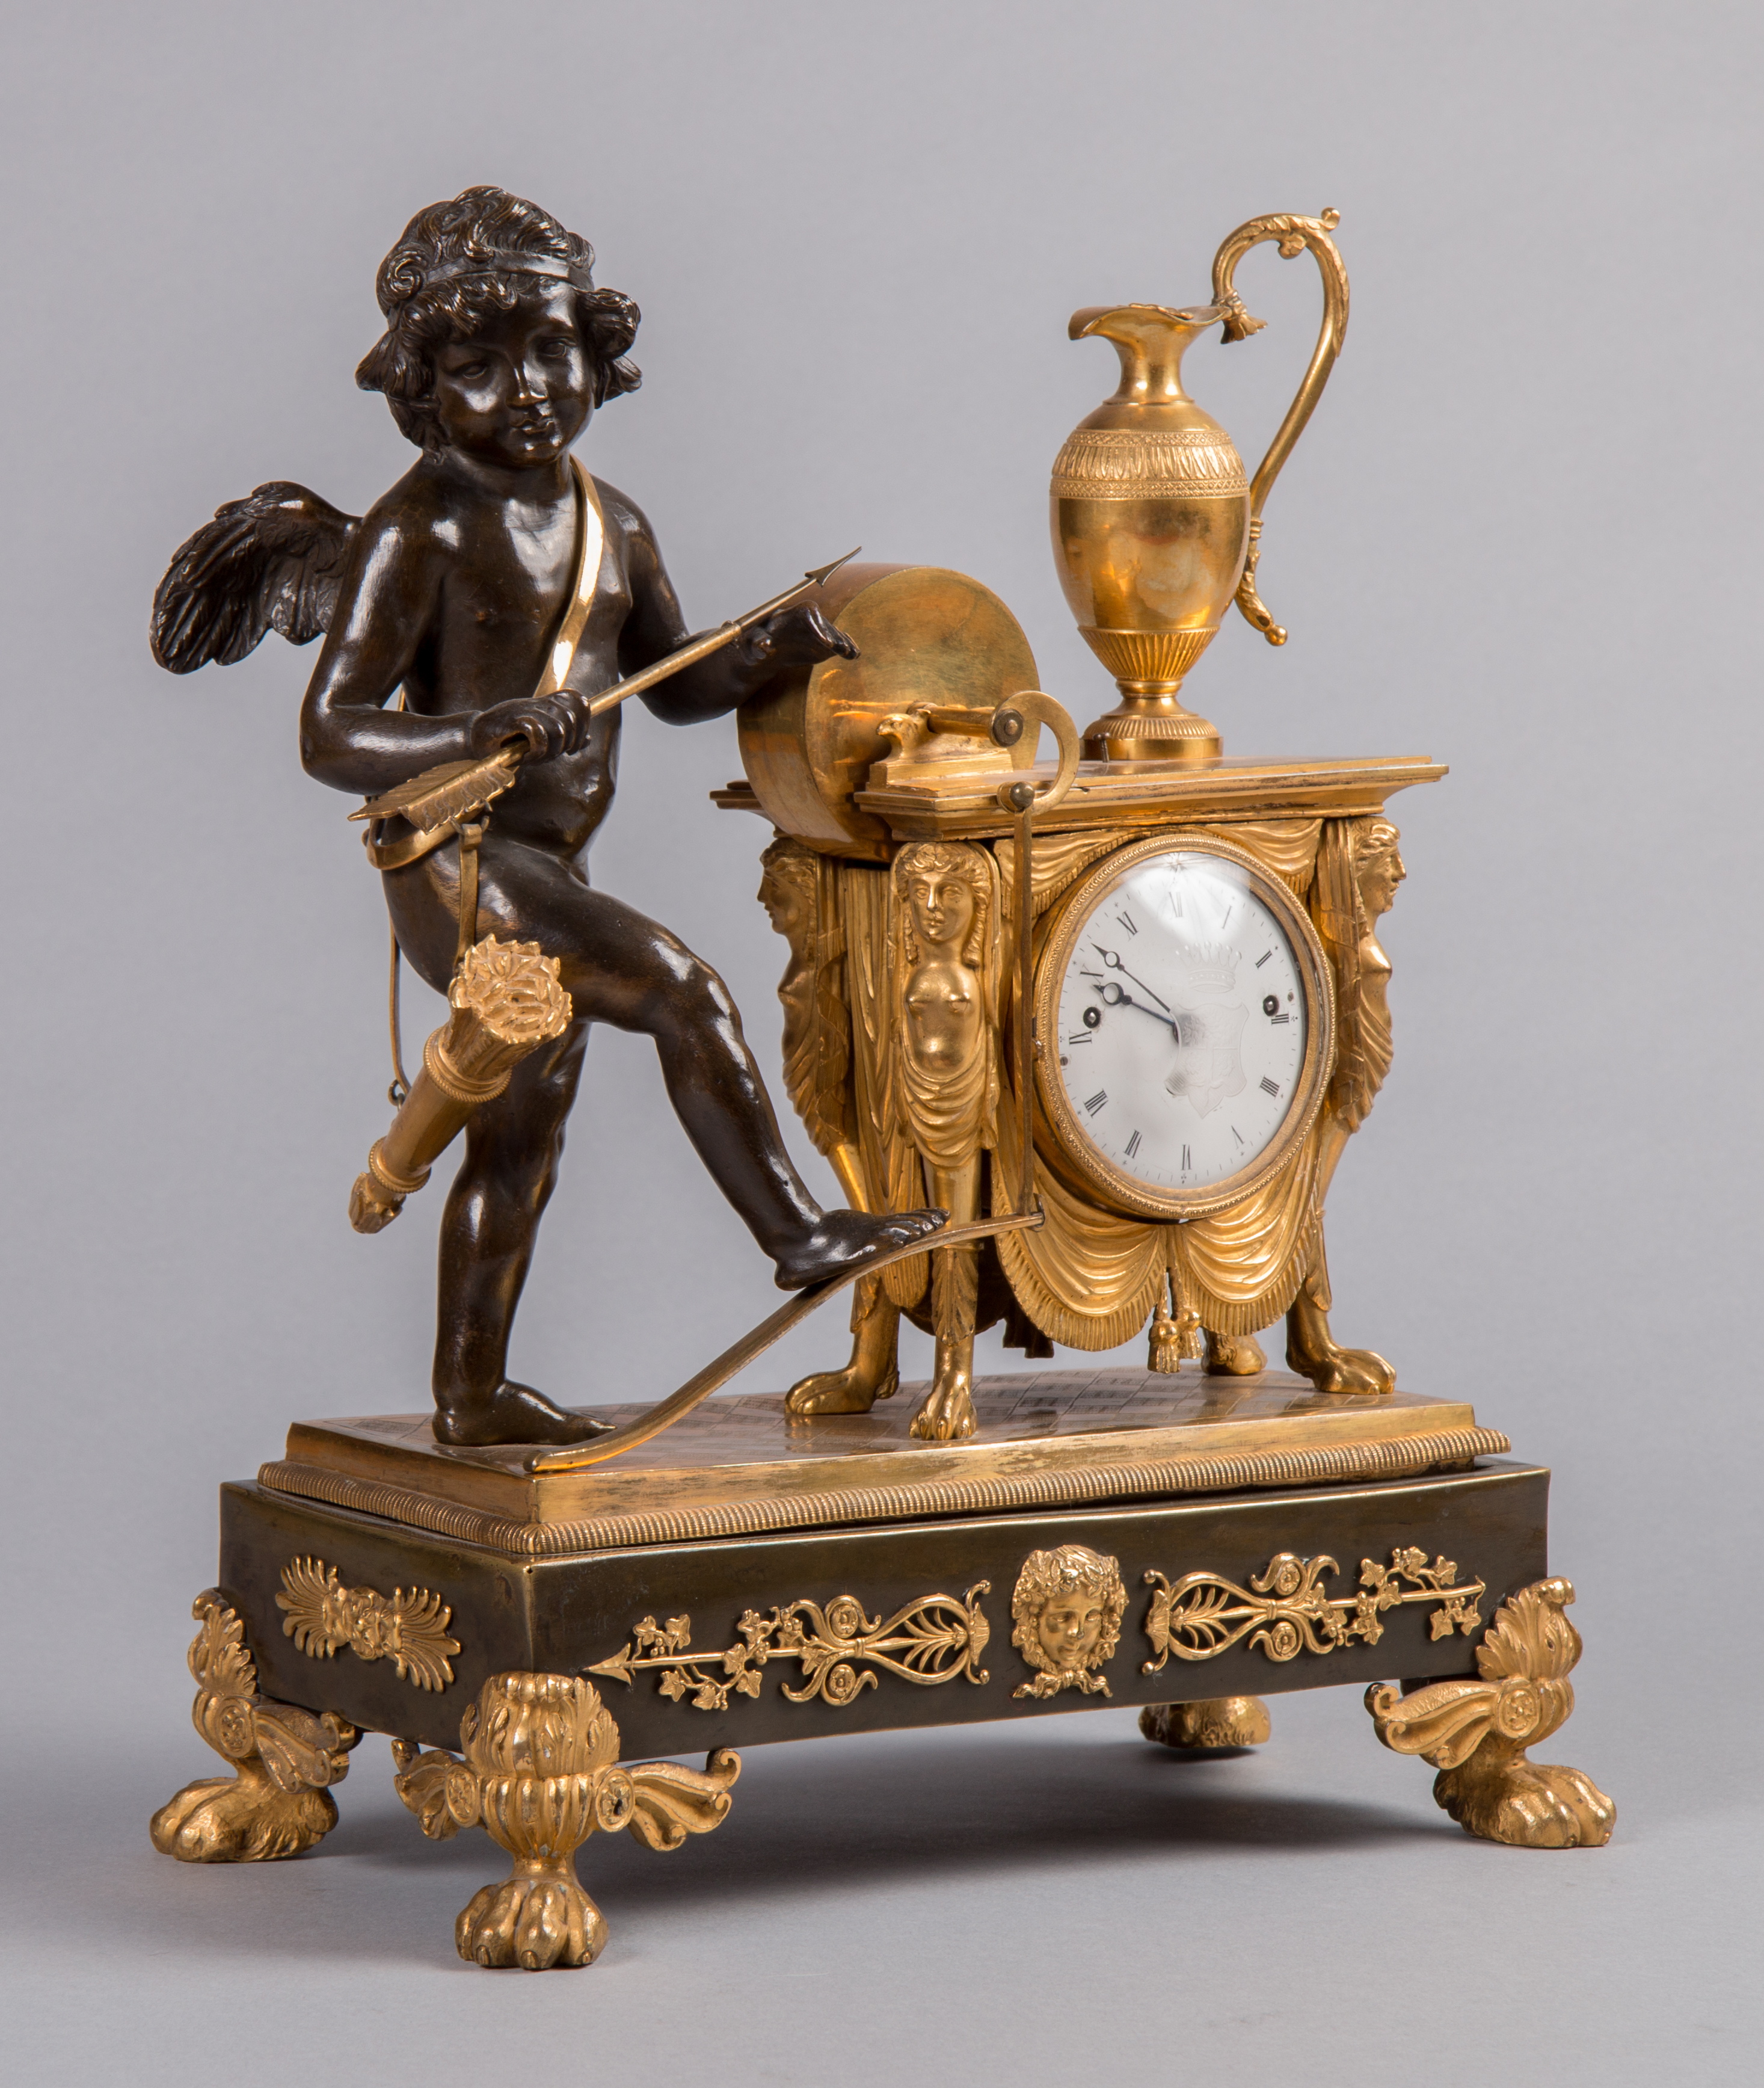 Empire mantel clock with Amor sharpening his arrow, c. 1830.